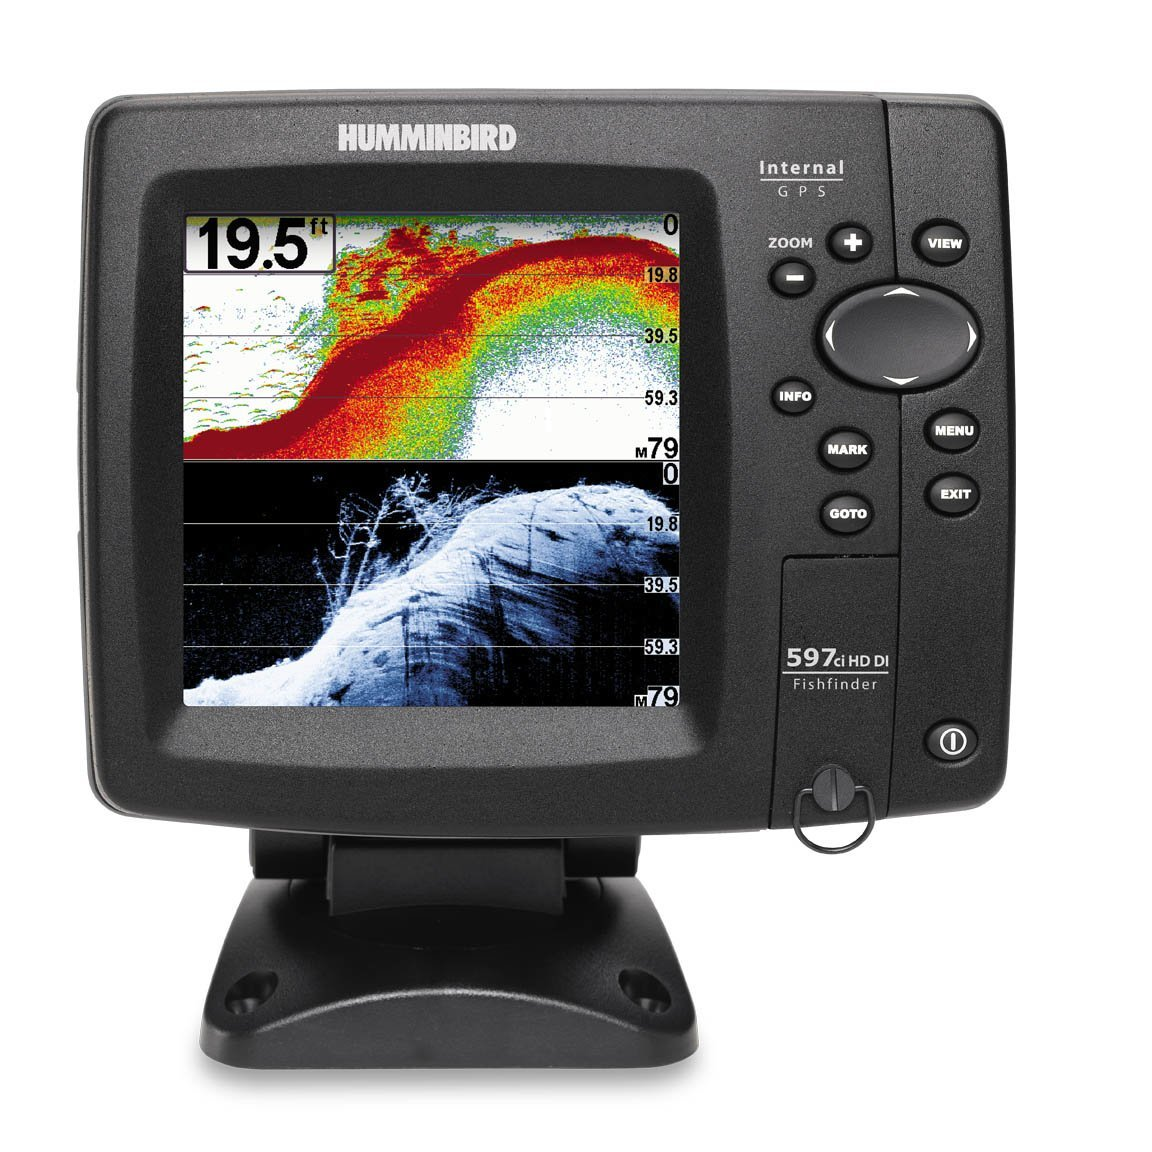 humminbird 597ci hd di review - fish finder guy, Fish Finder